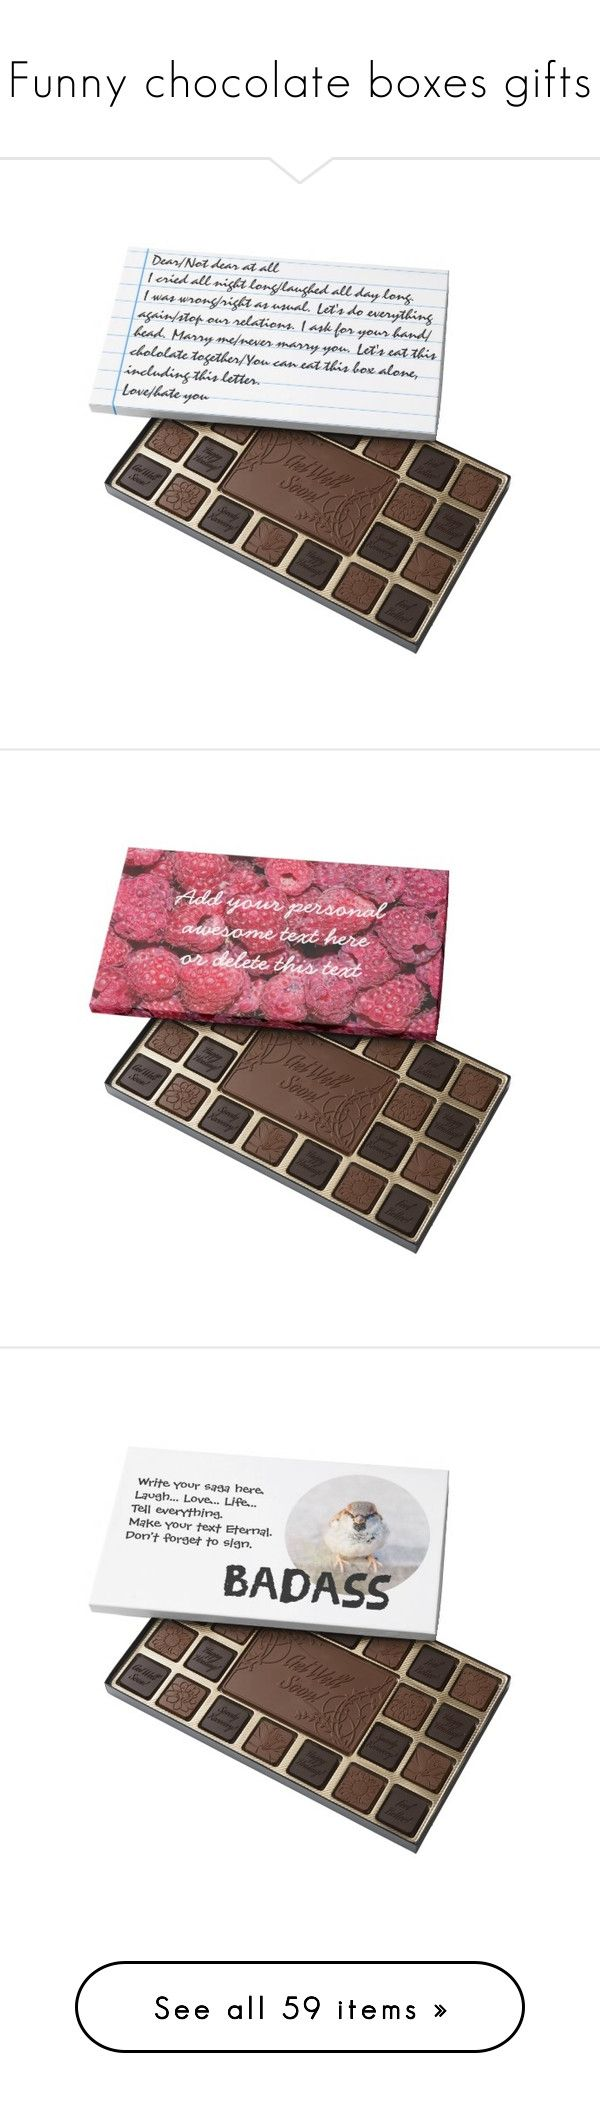 """""""Funny chocolate boxes gifts"""" by polyart-466 ❤ liked on Polyvore featuring home, home decor, holiday decorations, floral decor and kitchen & dining"""